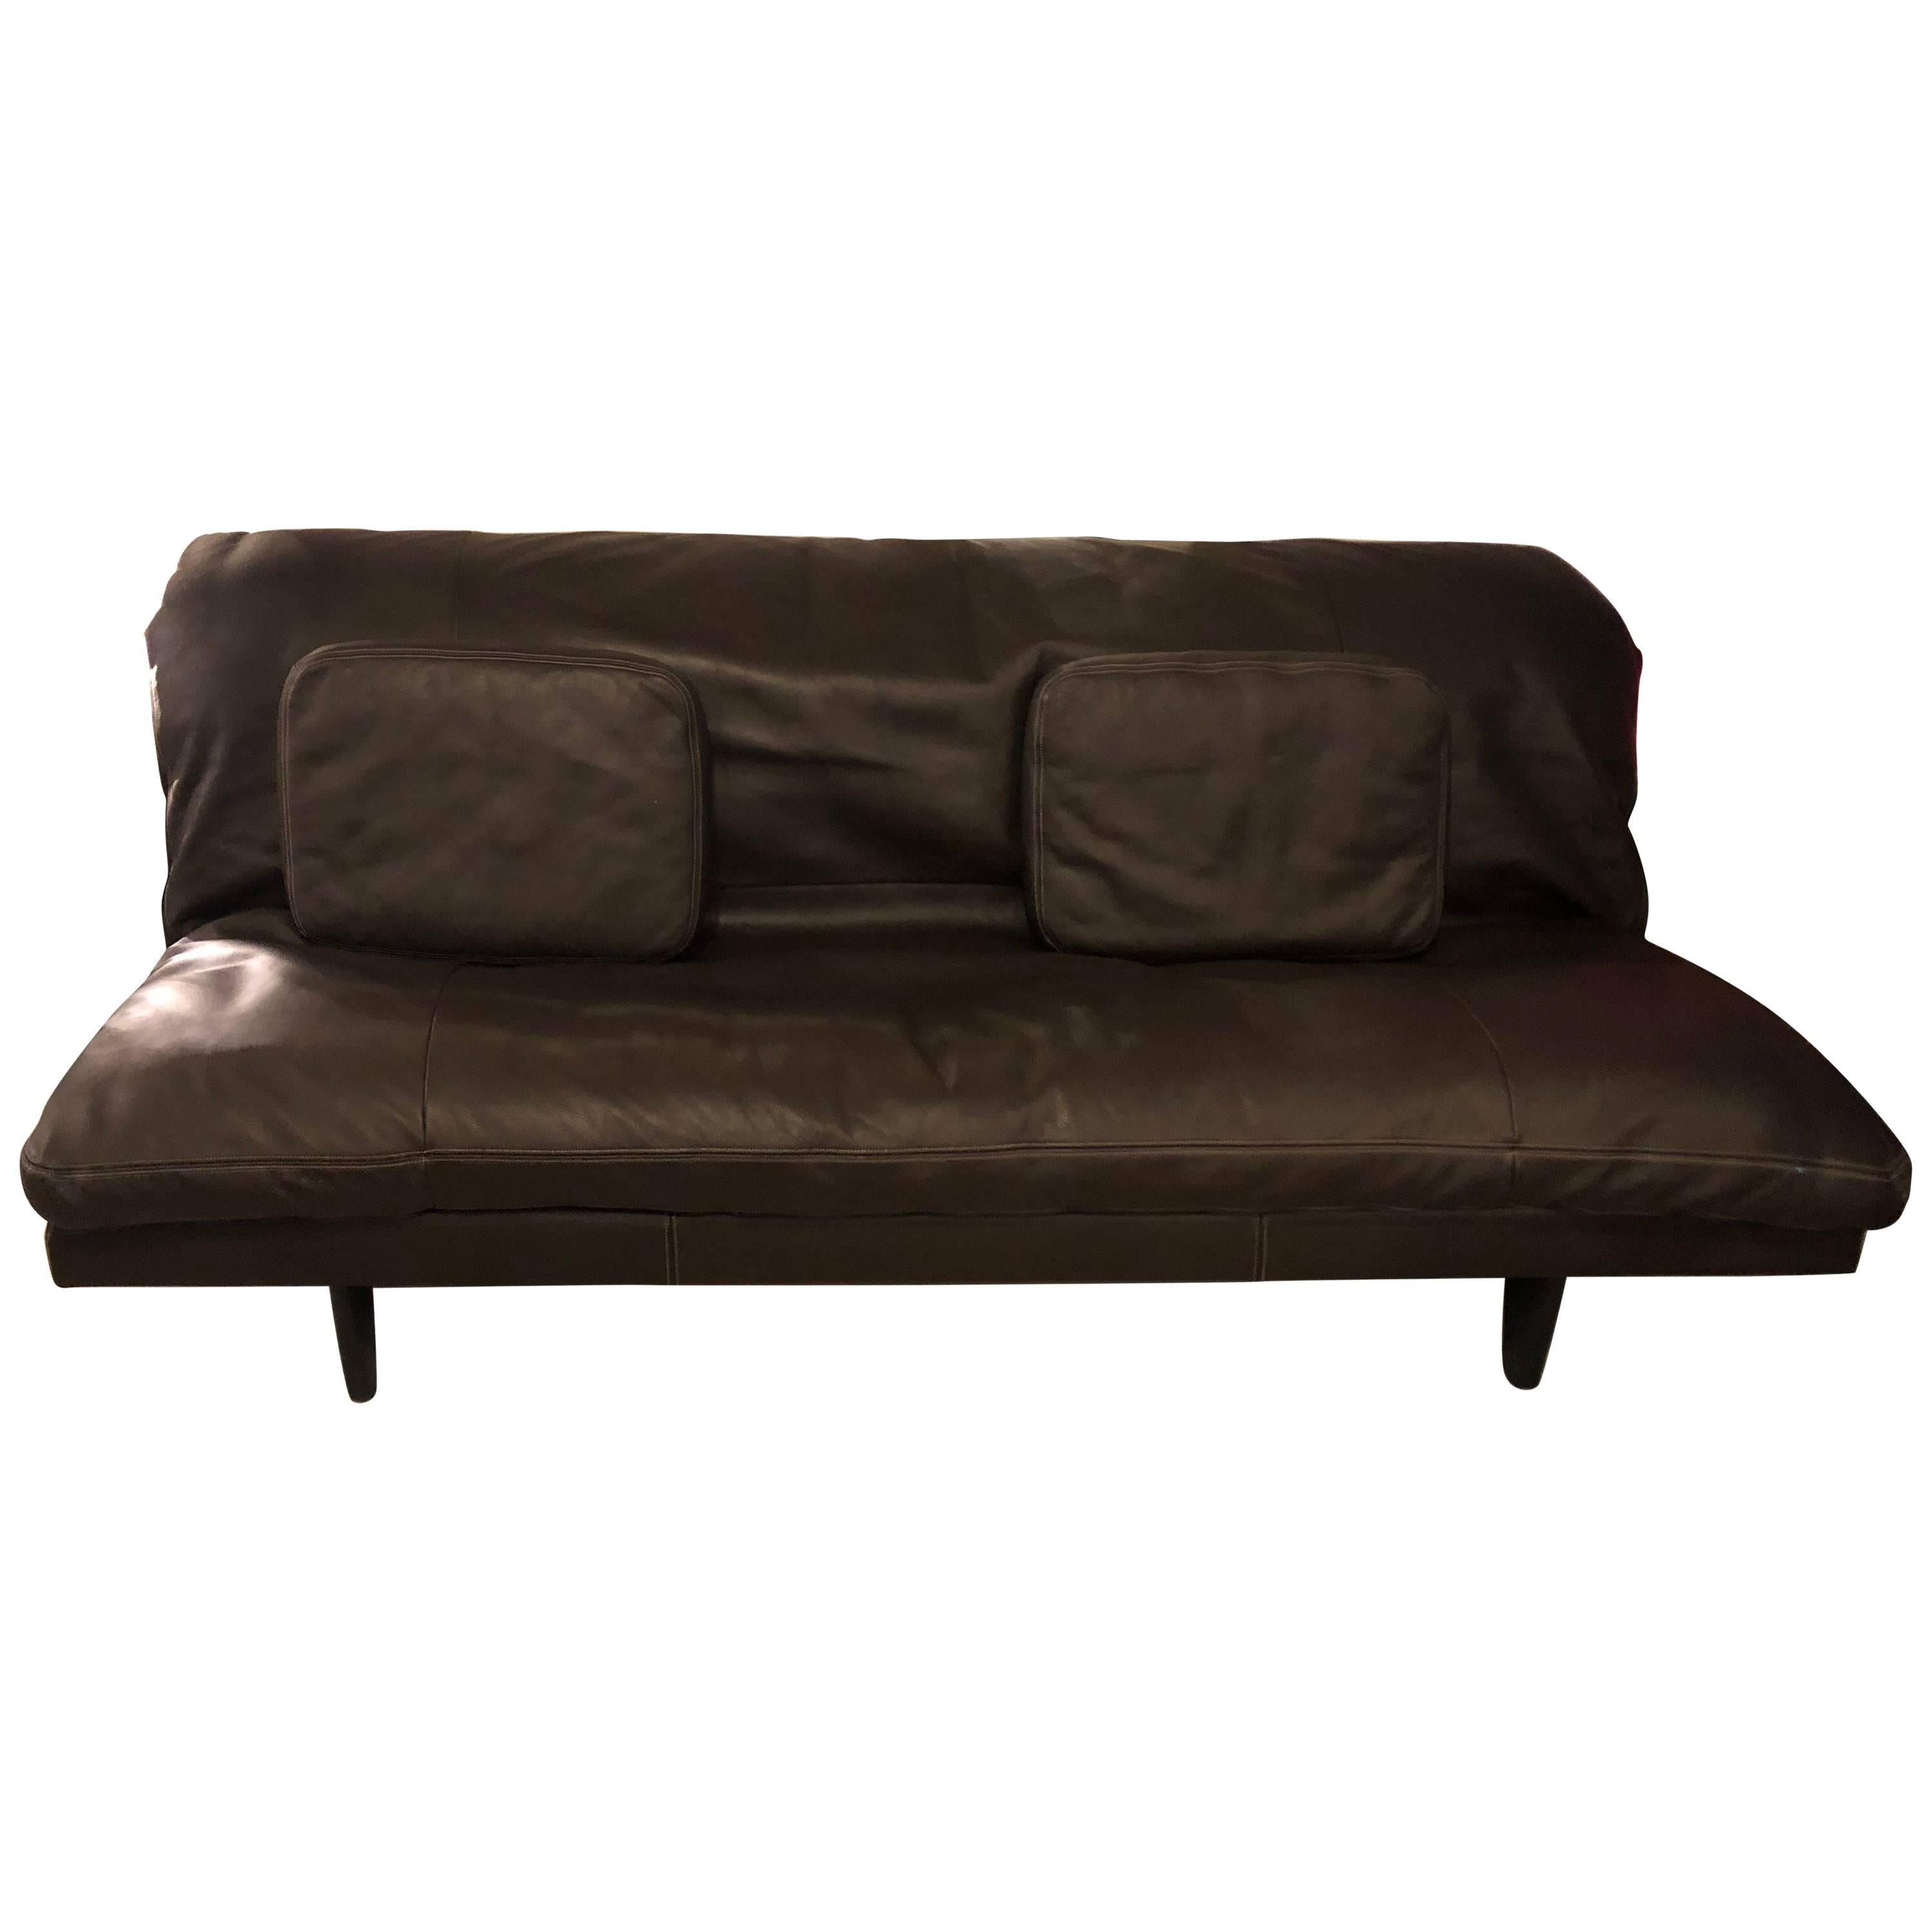 de sede sleeper sofa loveseat full brown leather or daybed for sale at 1stdibs